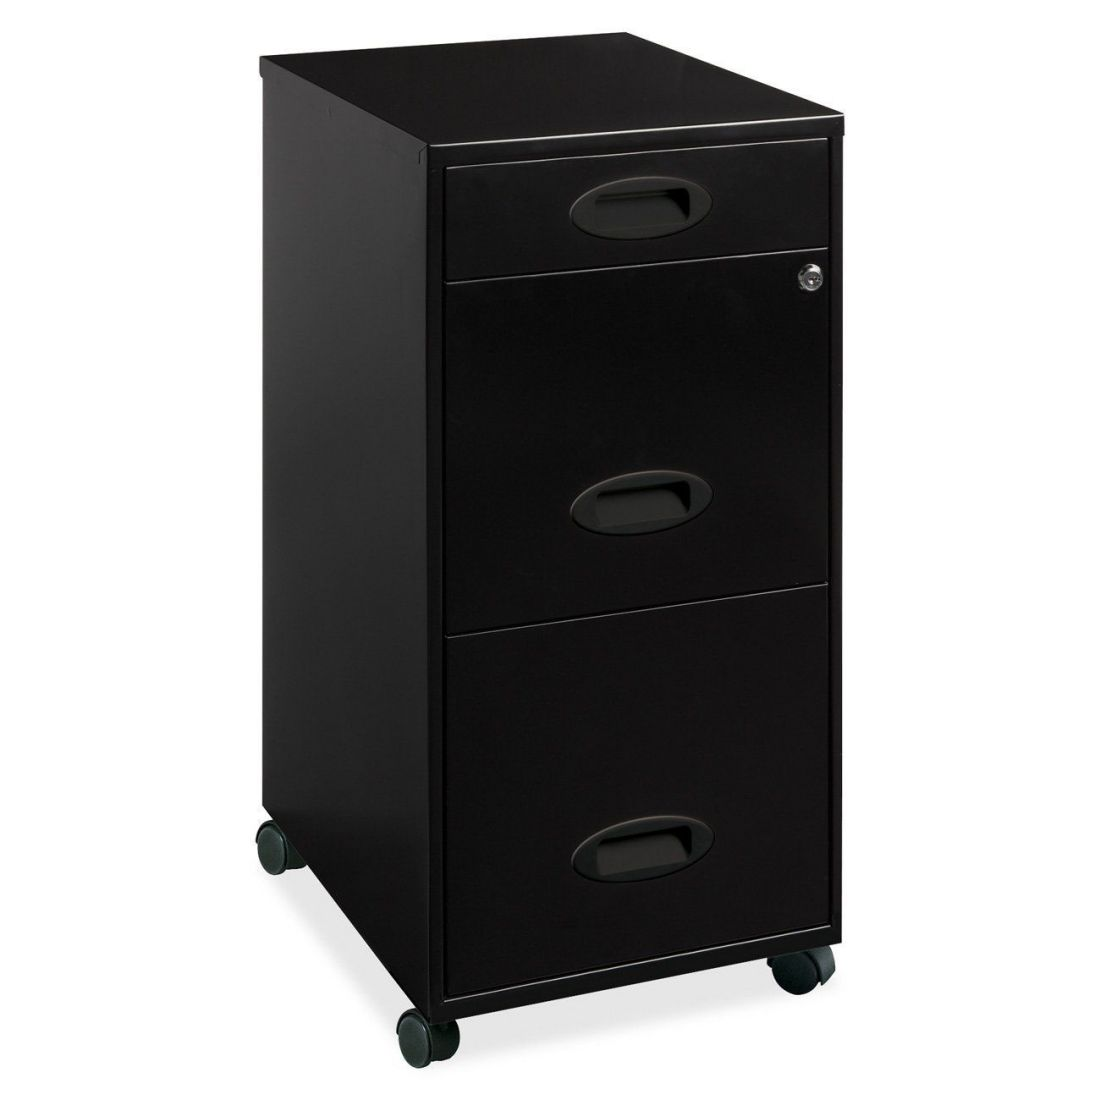 Lorell black metal small lockable mobile filing cabinet